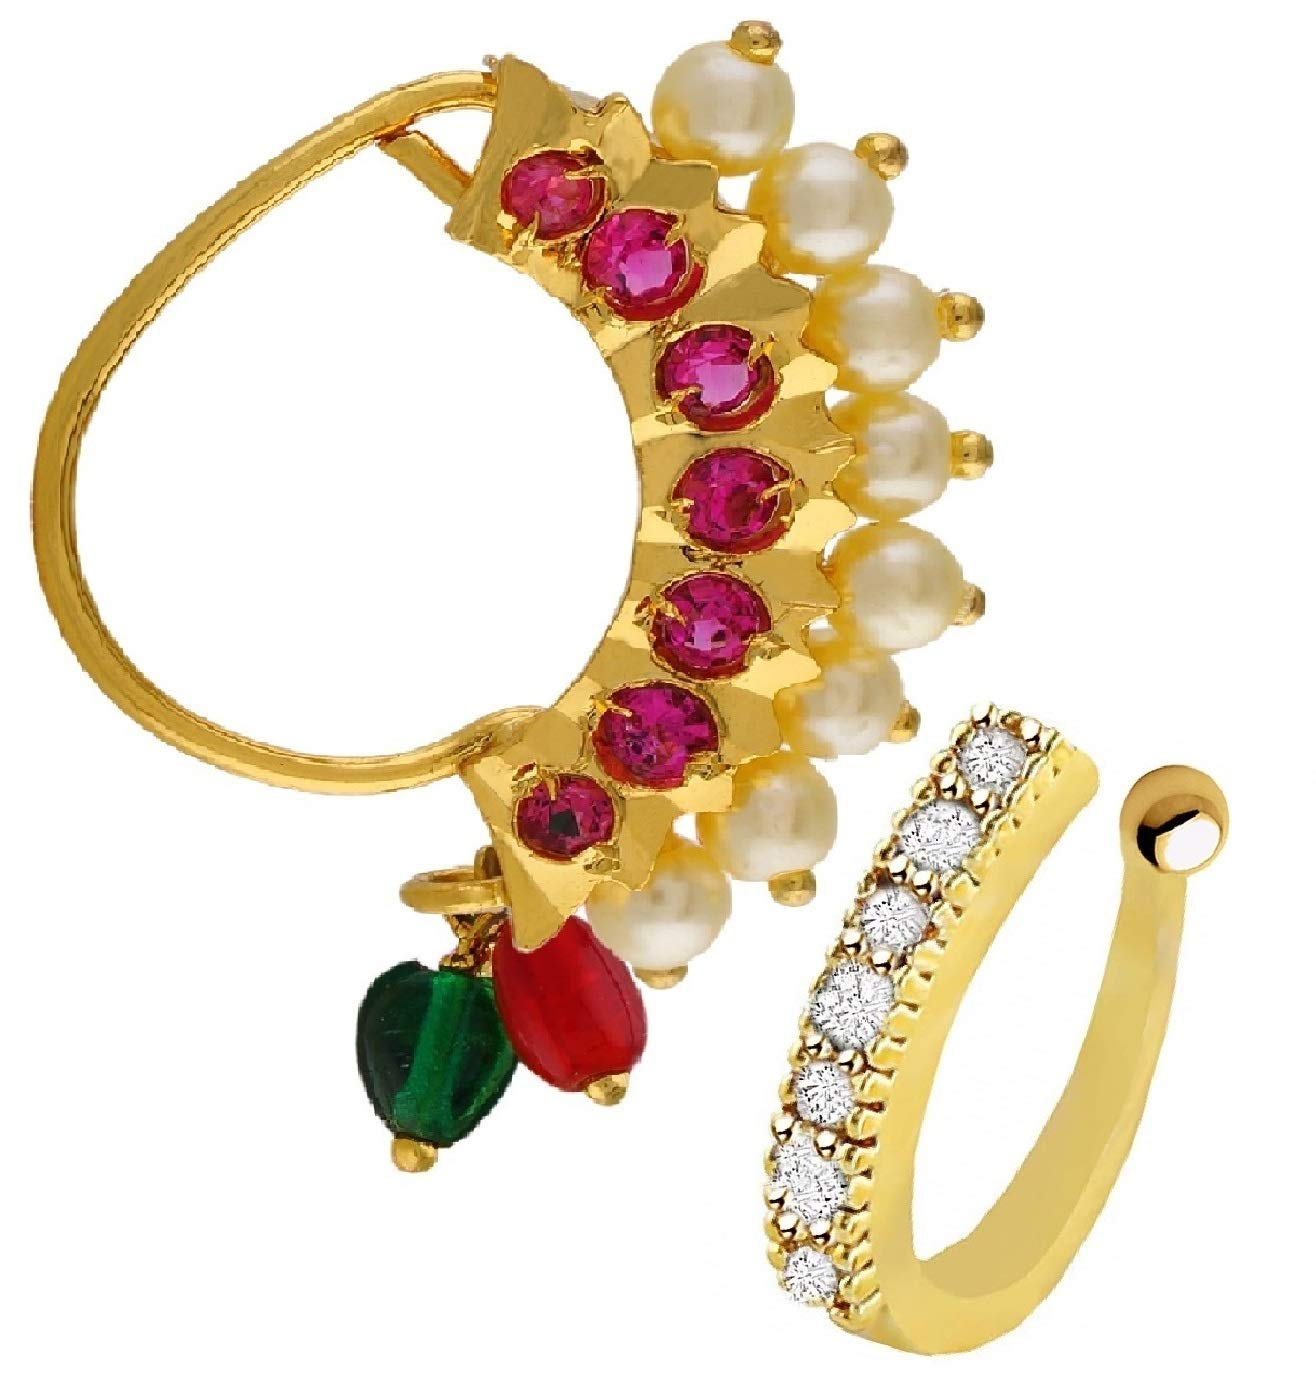 Vama Fashions Maharashtrian Gold Plated Pearl Nath Clip On Nose Ring Without Piercing For Women Buy Online In